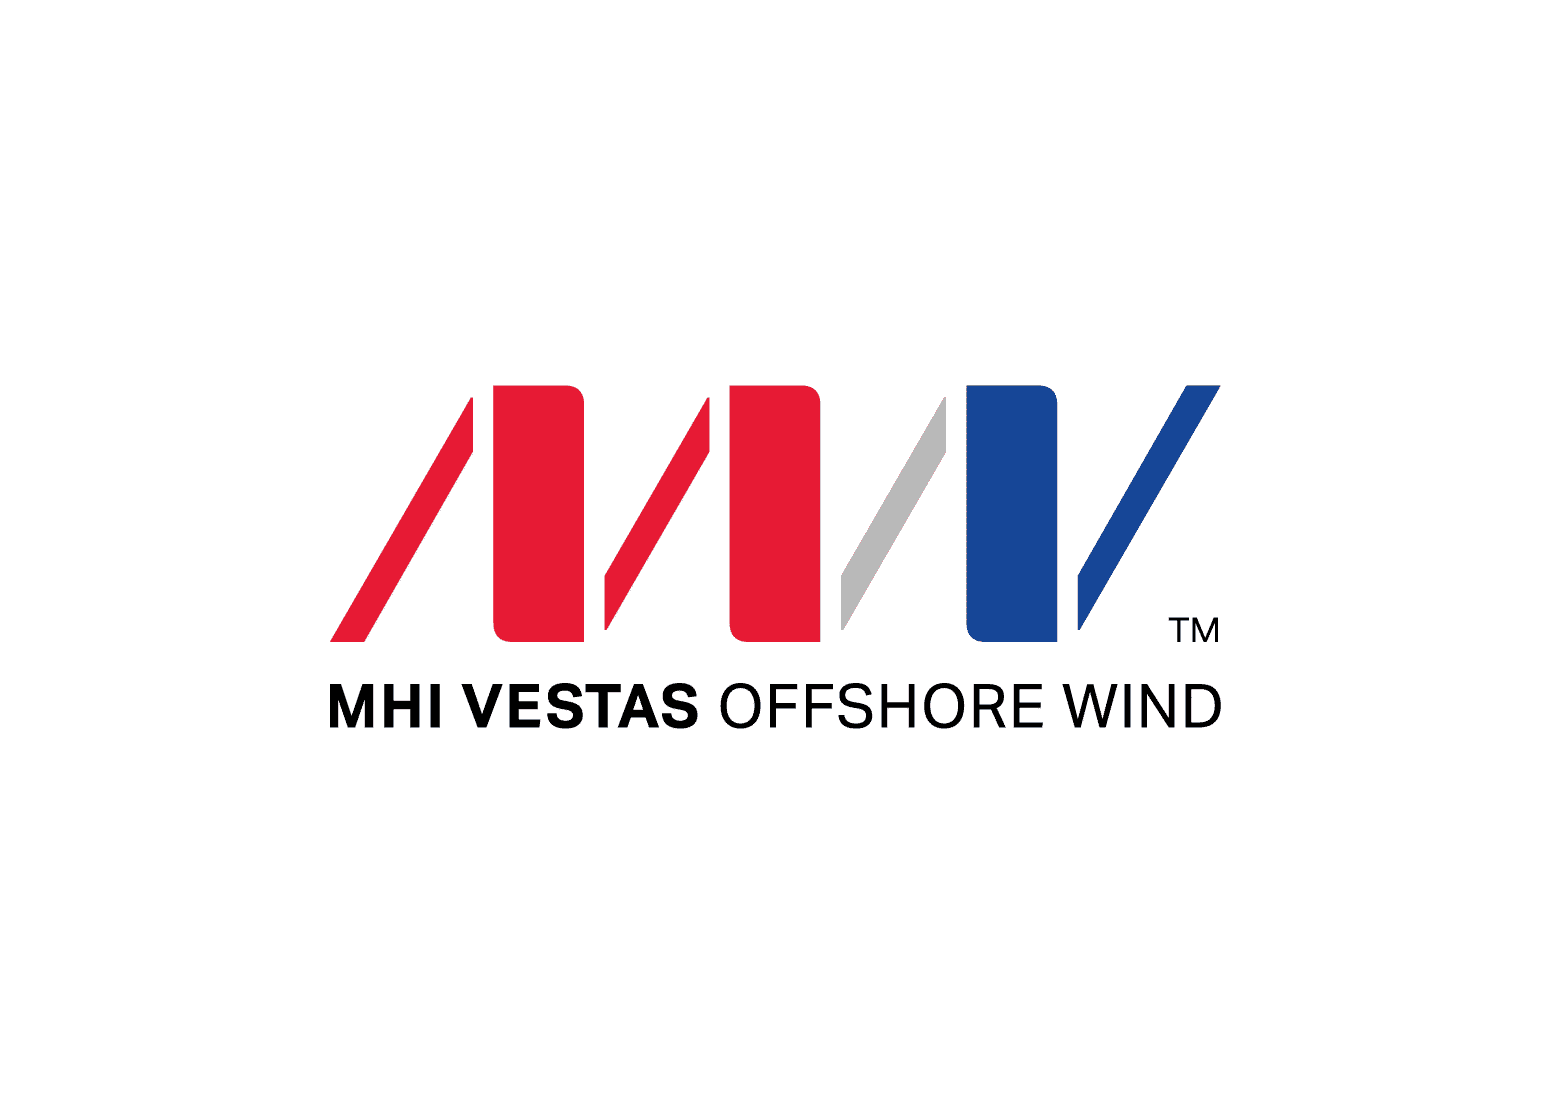 Logo for the company MHI Vestas Offshore Wind